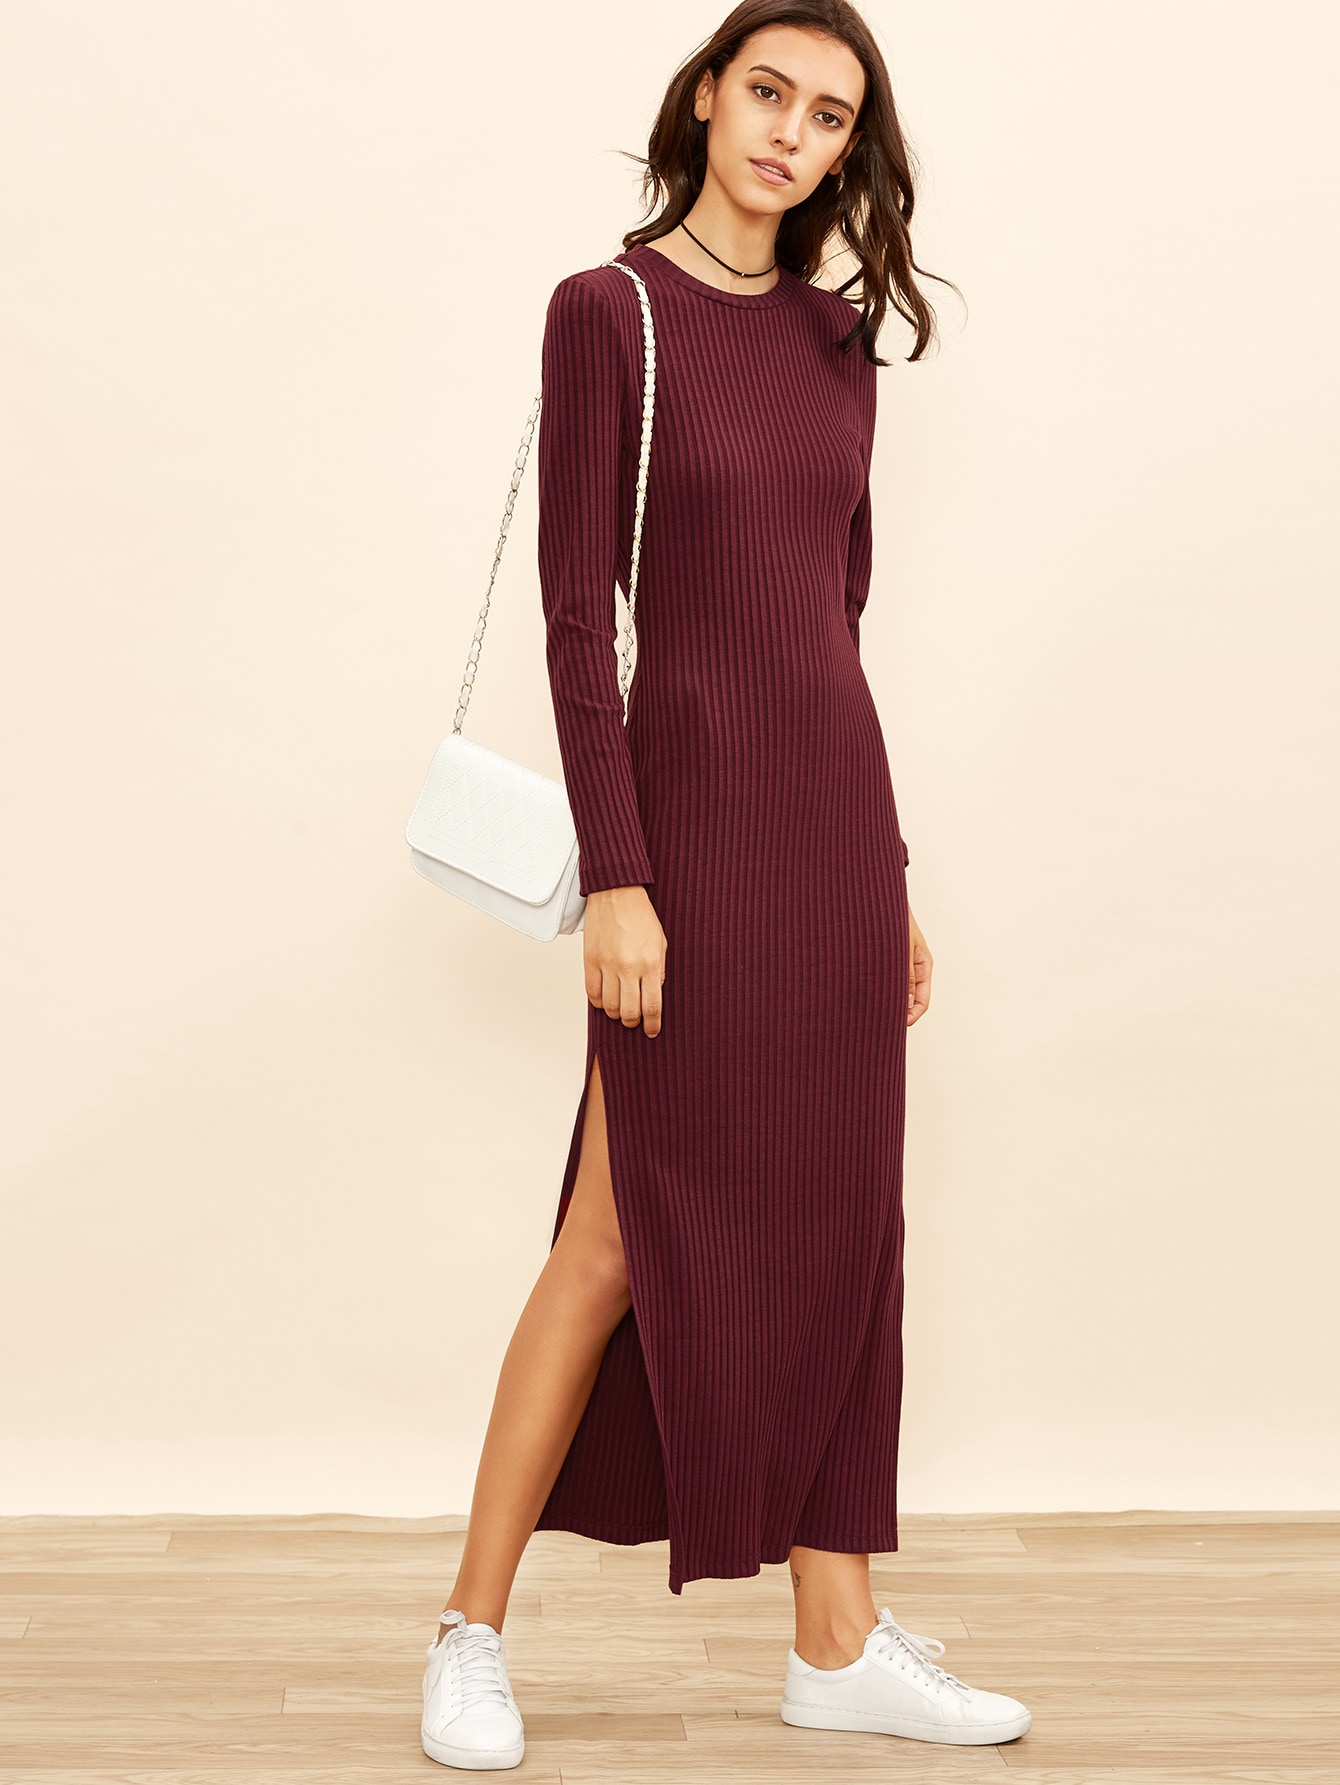 Burgundy Long Sleeve High Slit Ribbed Dress dress160913706